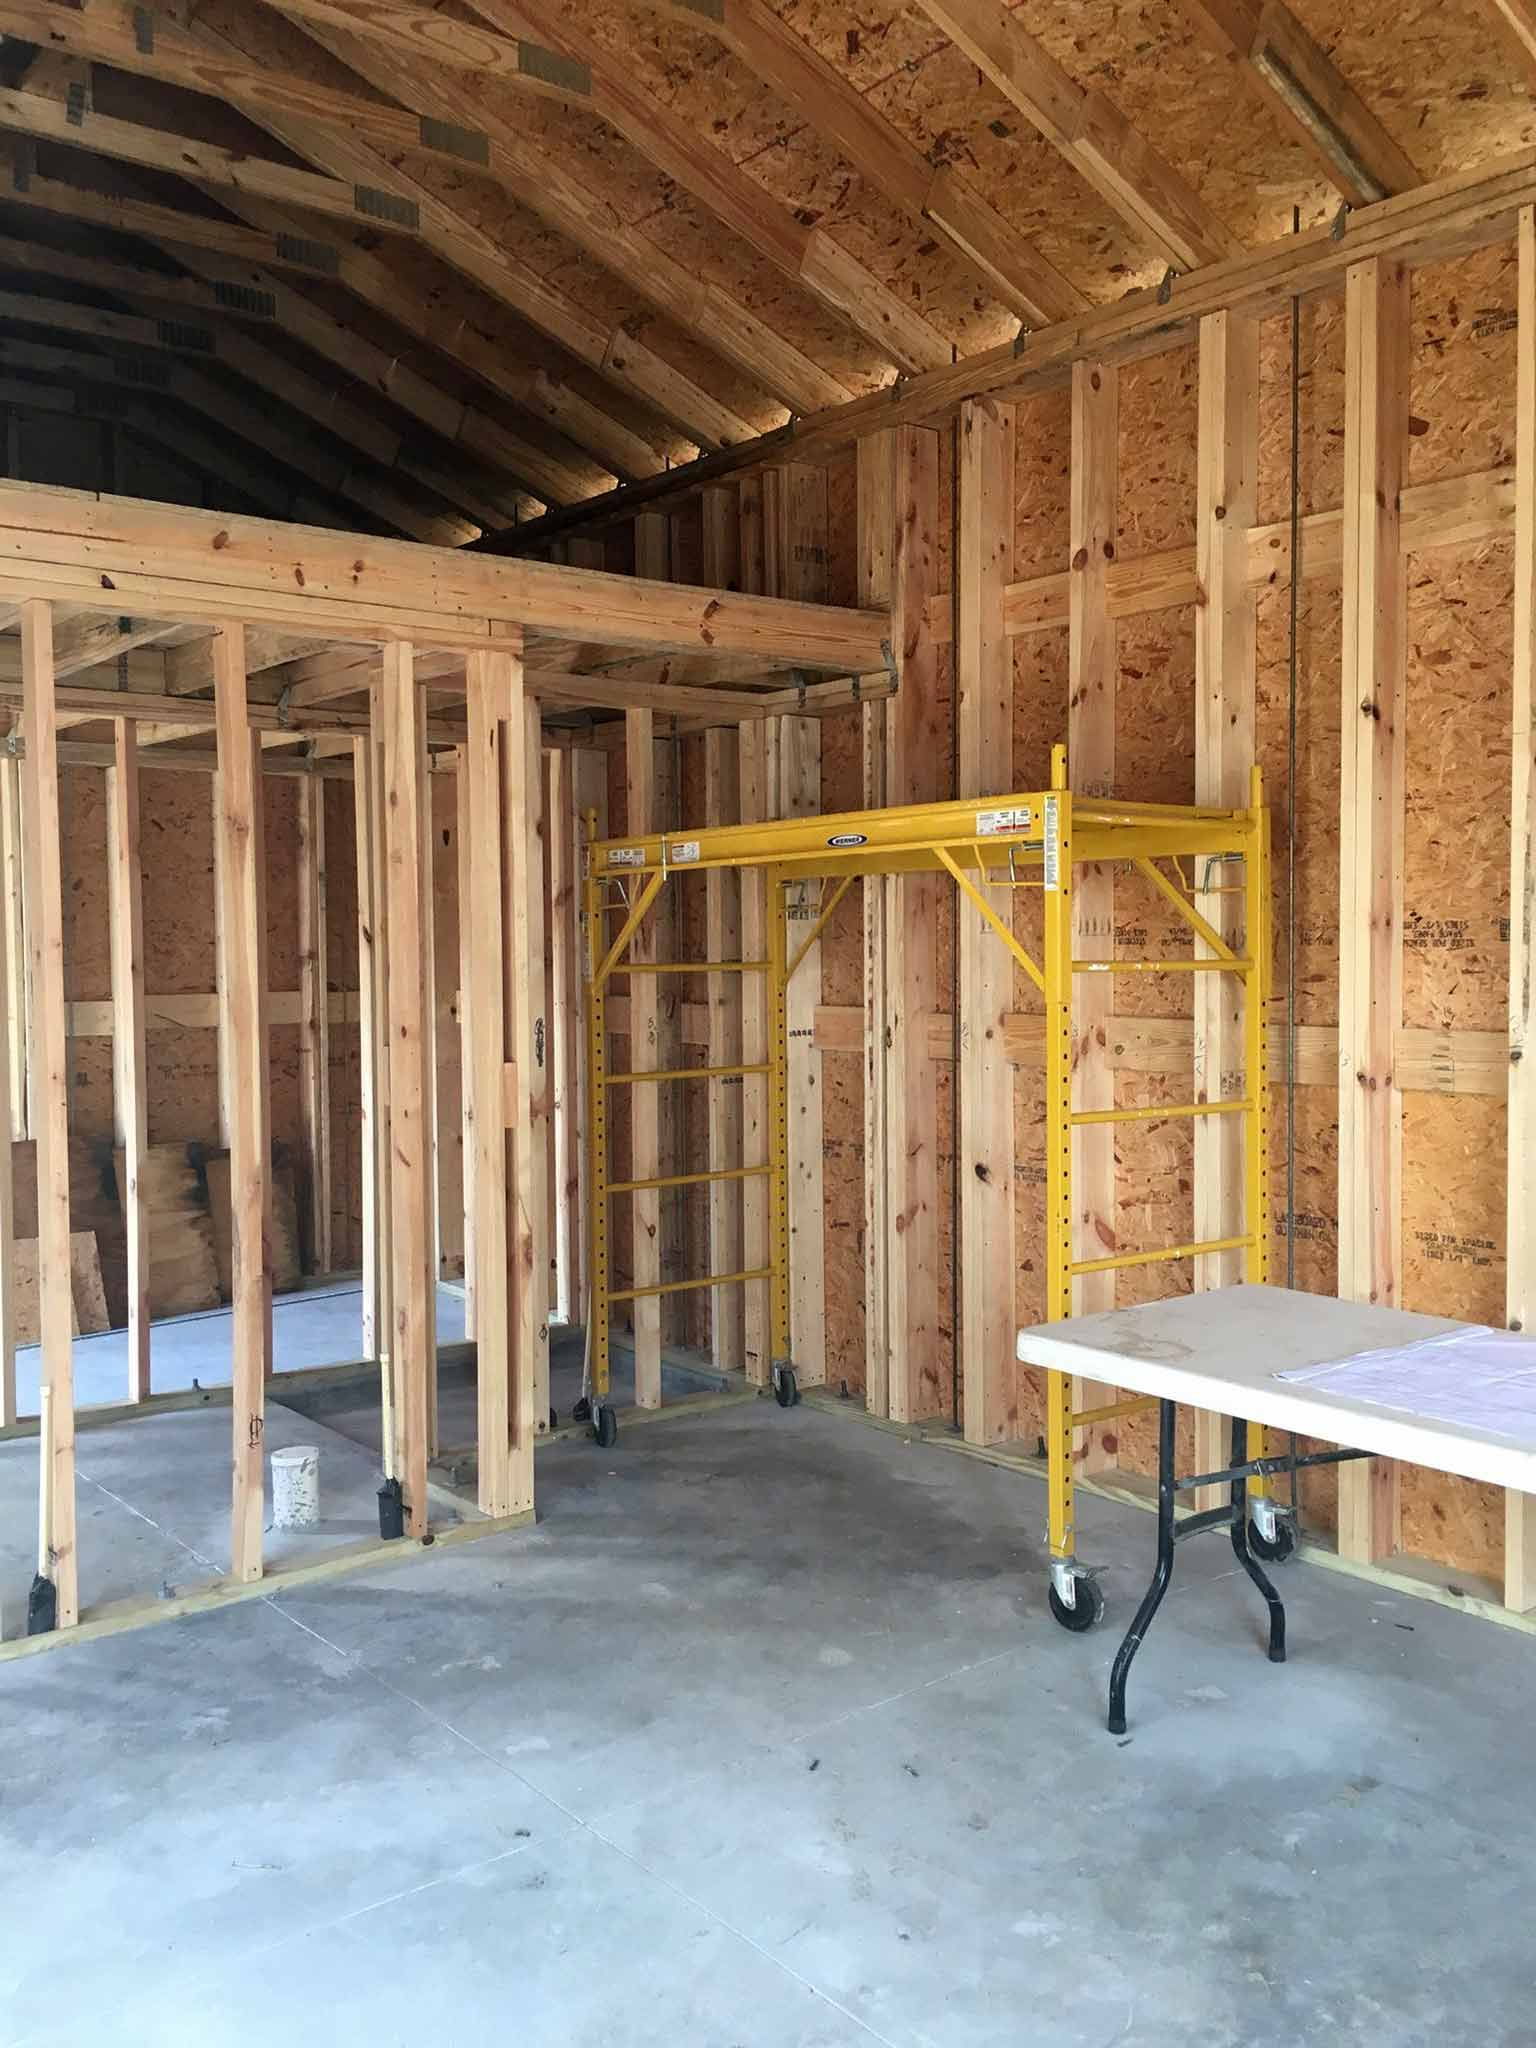 Kitchenette nook - guest house construction progress - That Homebird Life Blog